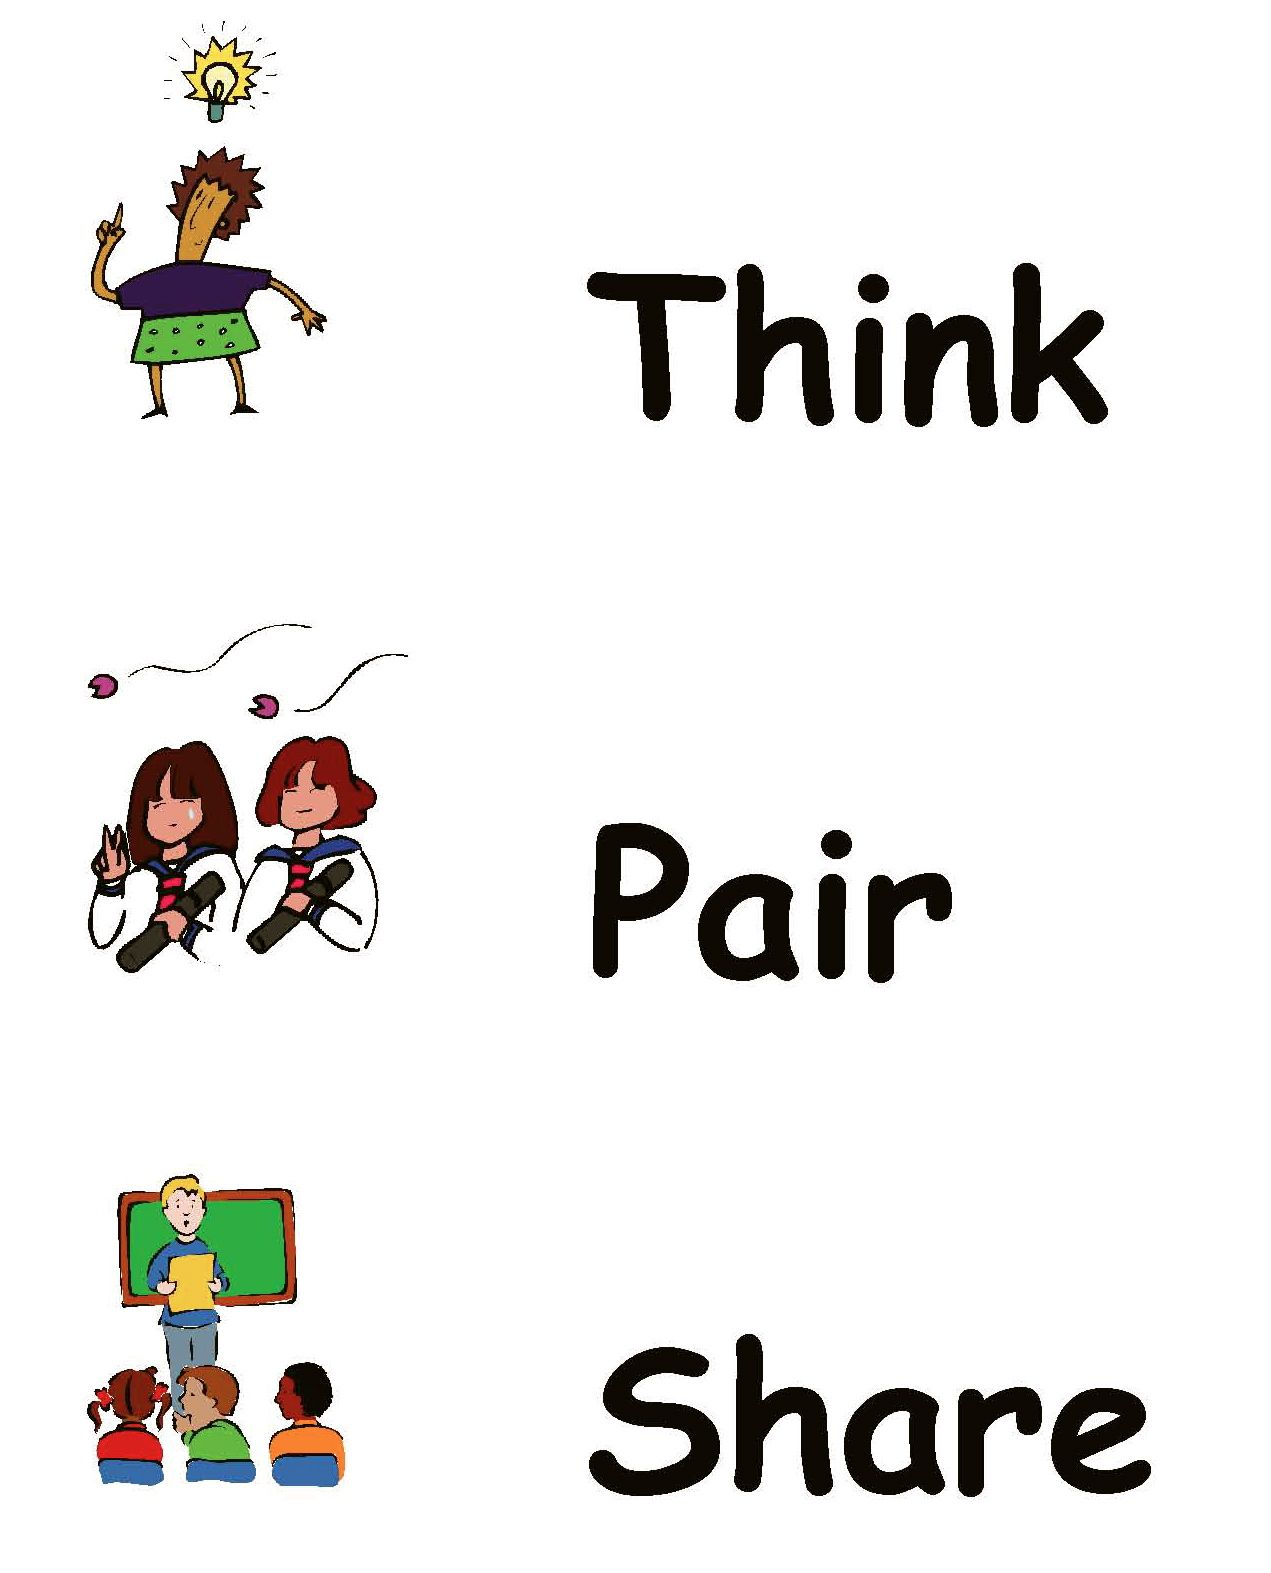 Think pair share clipart clip royalty free Think Pair Share Clipart (104+ images in Collection) Page 1 clip royalty free